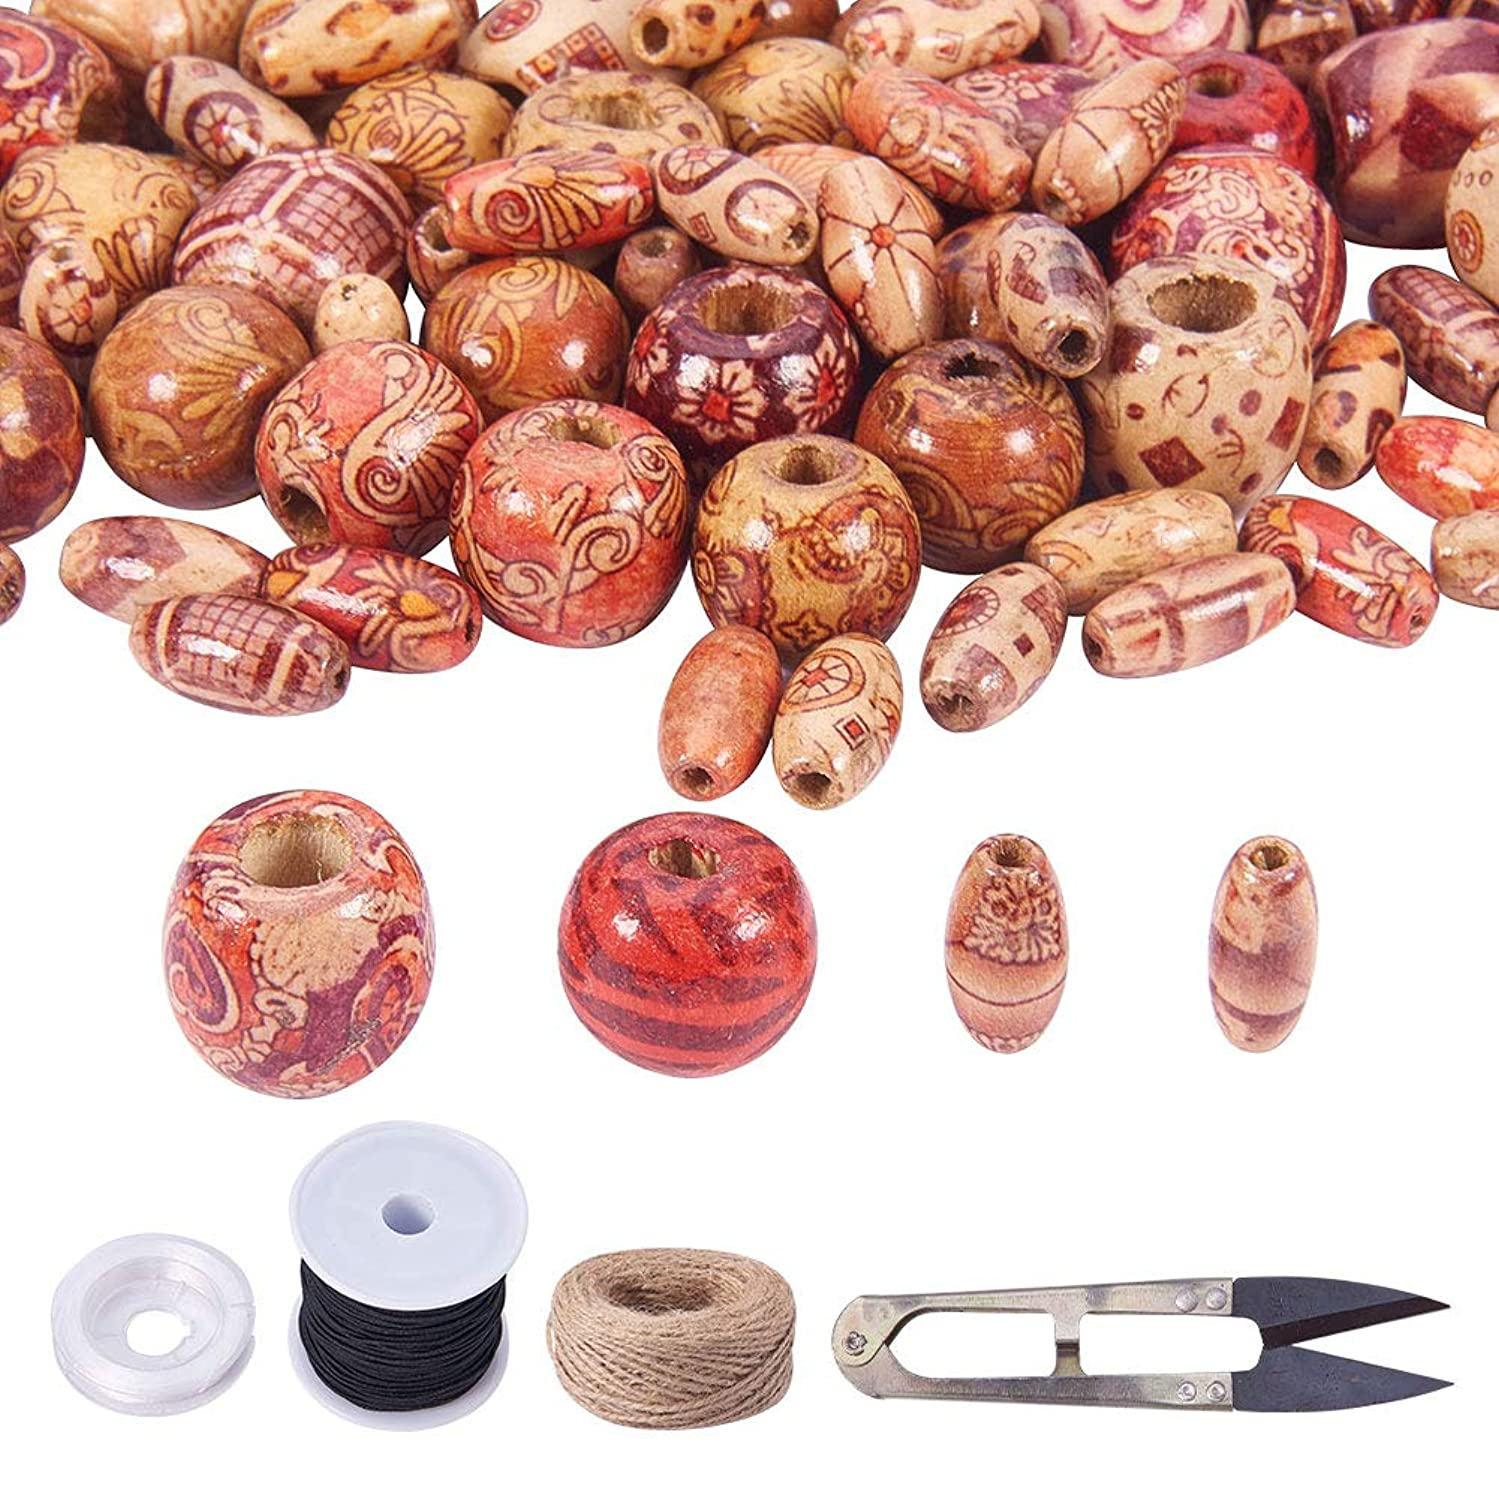 PH PandaHall 320 PCS 4 Stlyle Natural Painted Wood Beads Loose Spacer Bead with Elastic Cord, Hemp Cord, Scissors for DIY Handmade Rosary Bracelet Necklace Hair